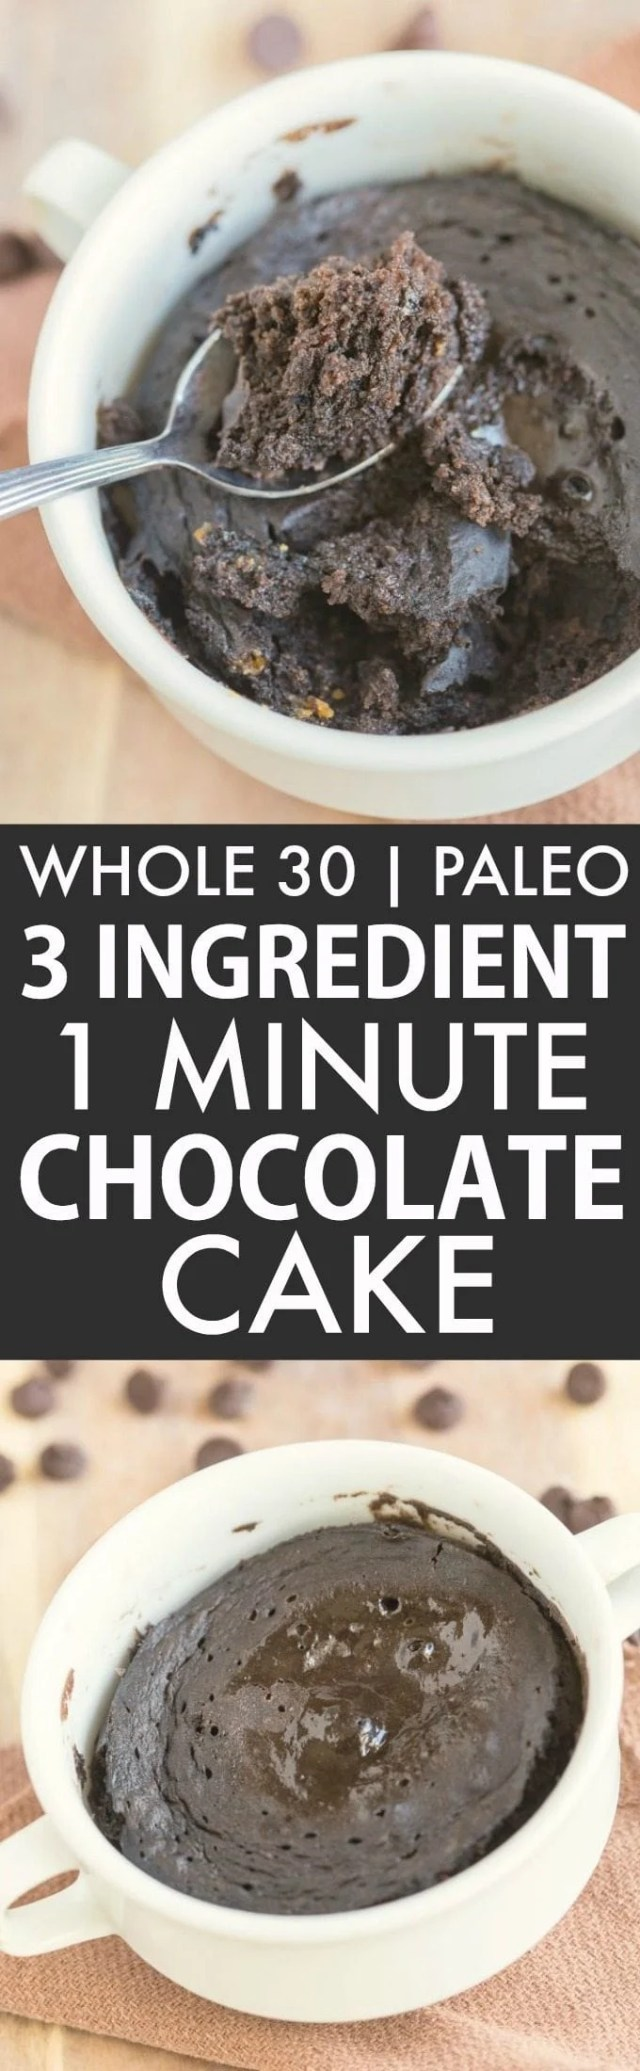 3 Ingredient 1 Minute Chocolate Cake Bake (Whole 30, Paleo, V, GF)- Whole30 friendly breakfast or snack which uses just THREE ingredients- Flourless, grain-free and fruit based and sweetened! Microwave mug cake or oven option! {whole 30, paleo, vegan, gluten free recipe}- thebigmansworld.com